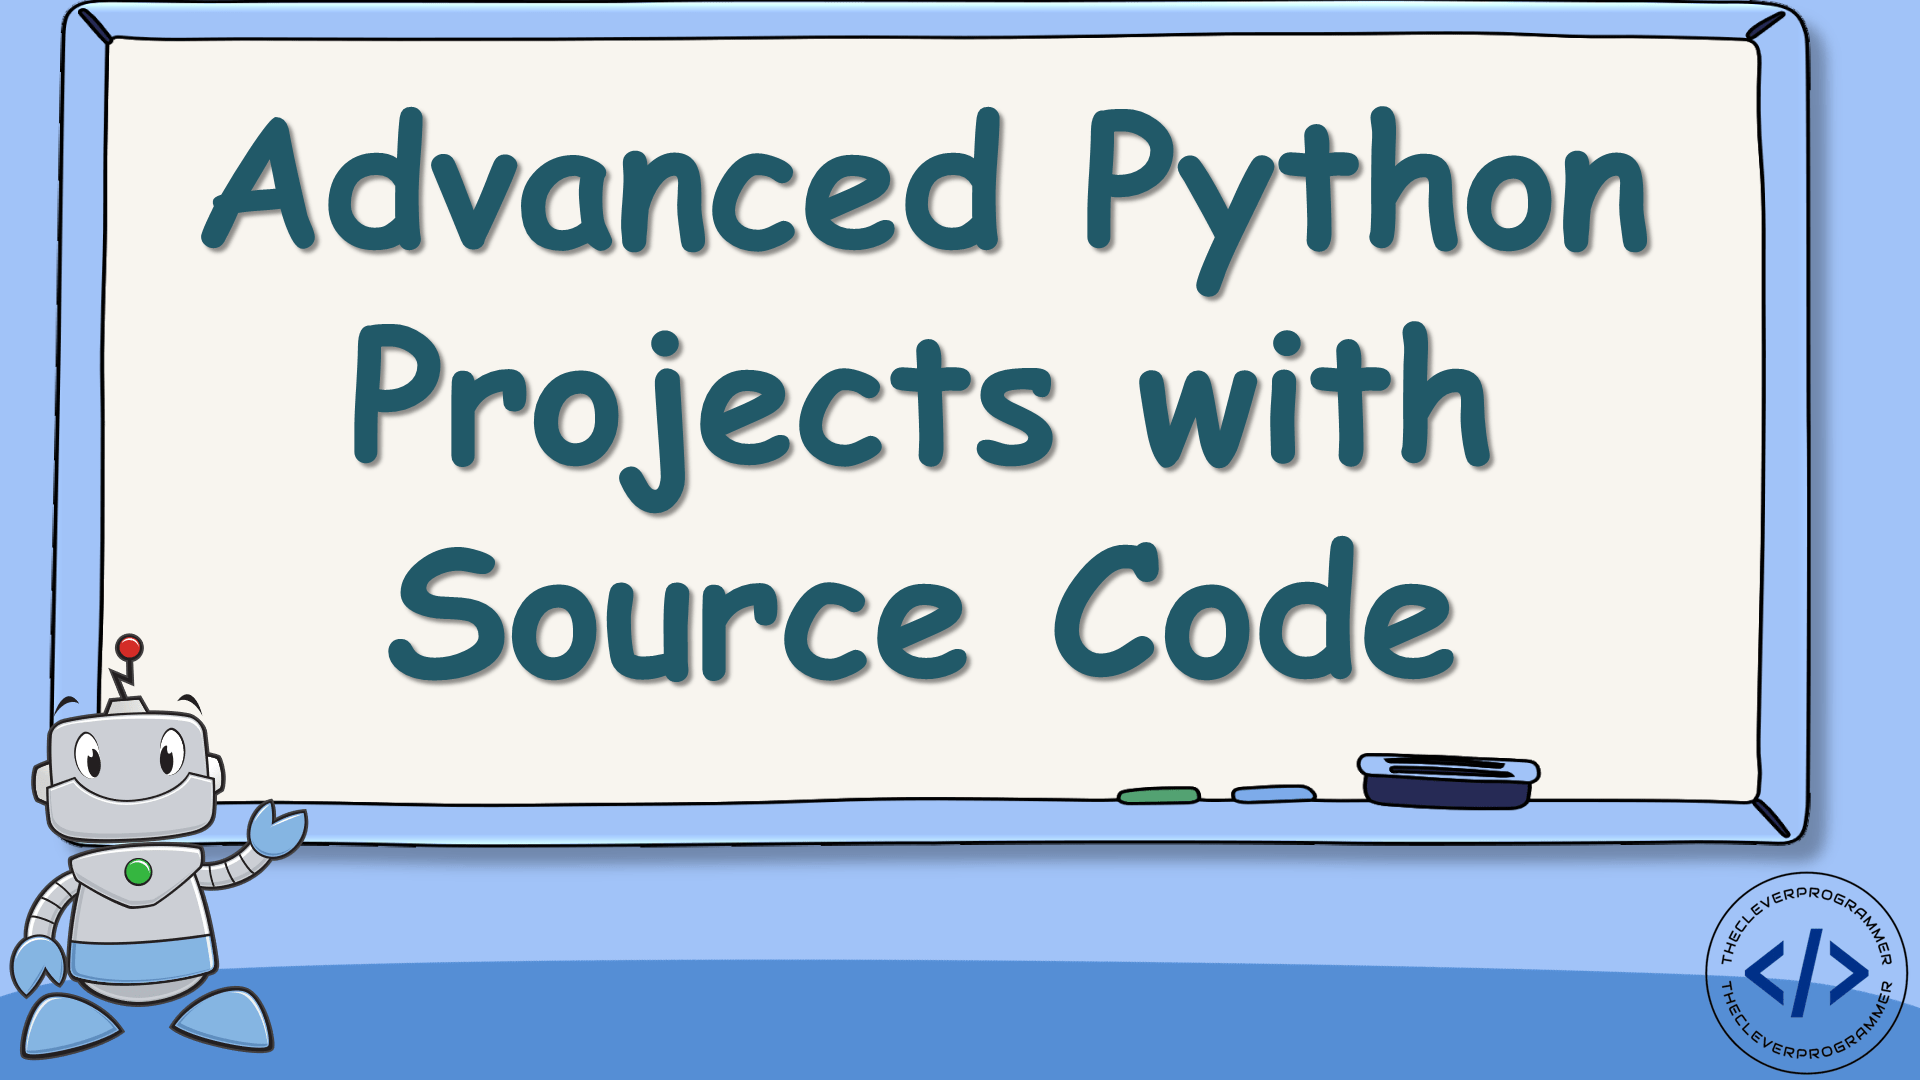 Advanced Python Projects with Source Code